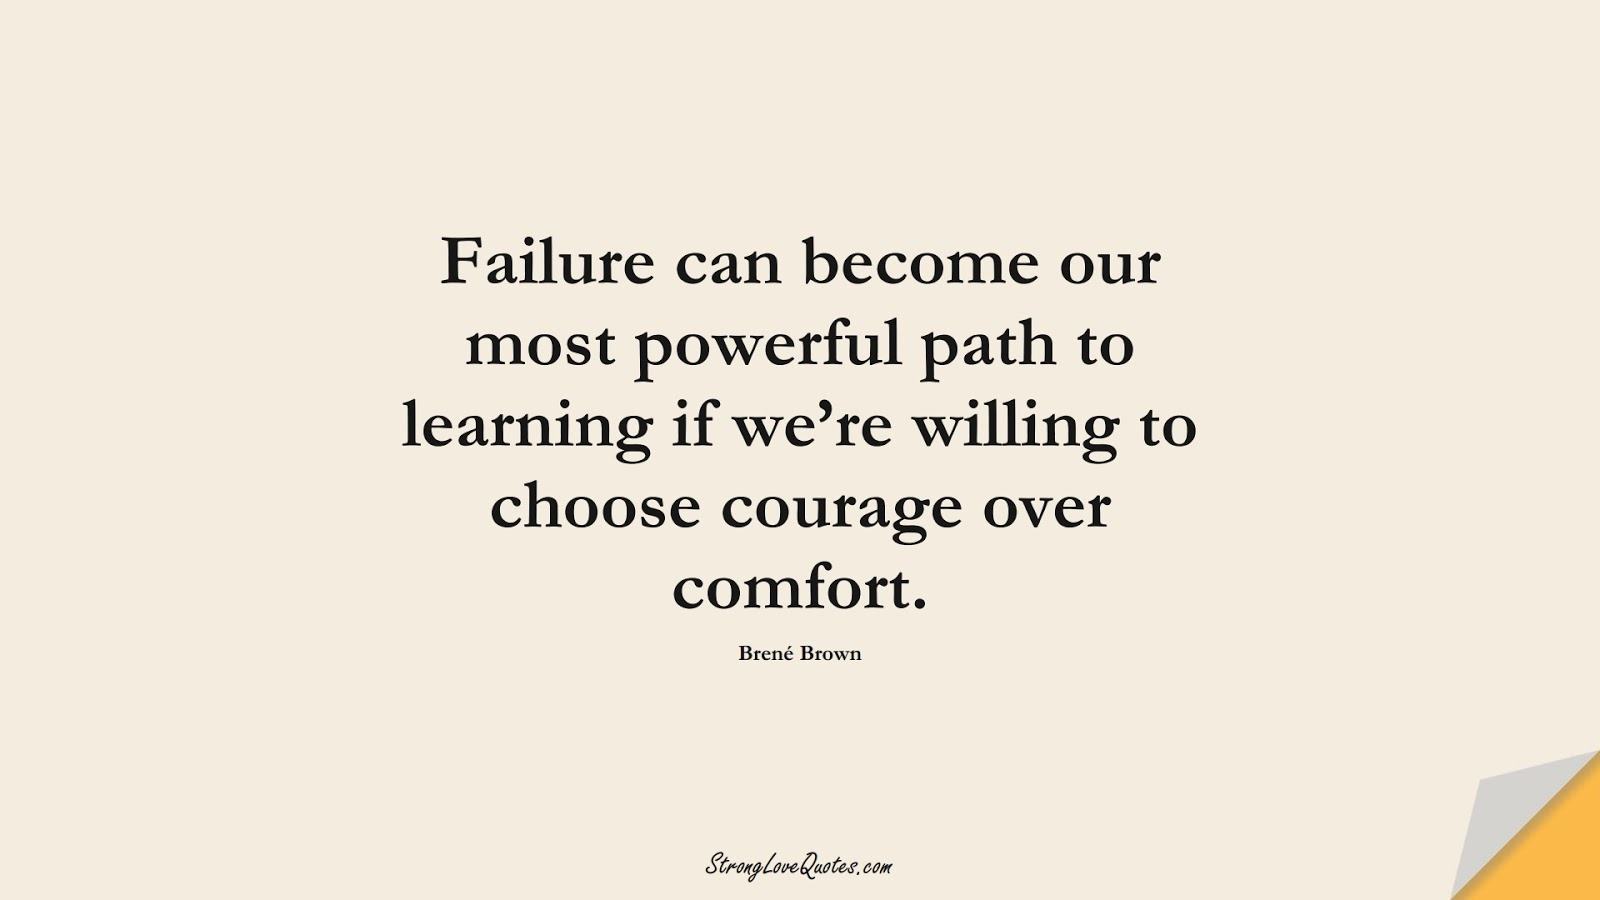 Failure can become our most powerful path to learning if we're willing to choose courage over comfort. (Brené Brown);  #LearningQuotes